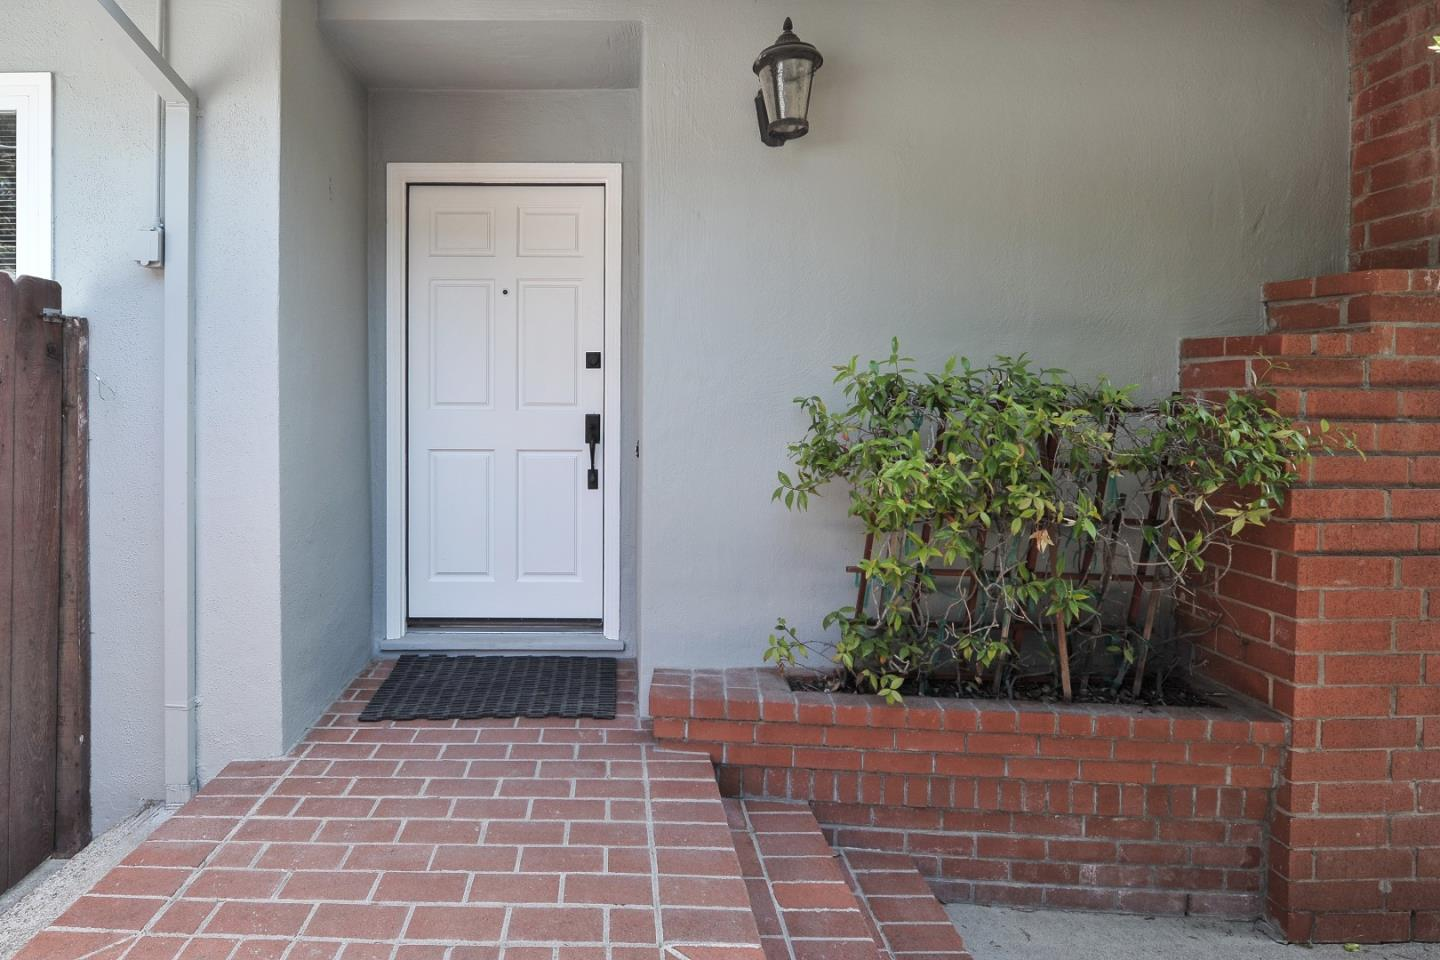 Additional photo for property listing at 150 Crosby Ct  SAN BRUNO, CALIFORNIA 94066